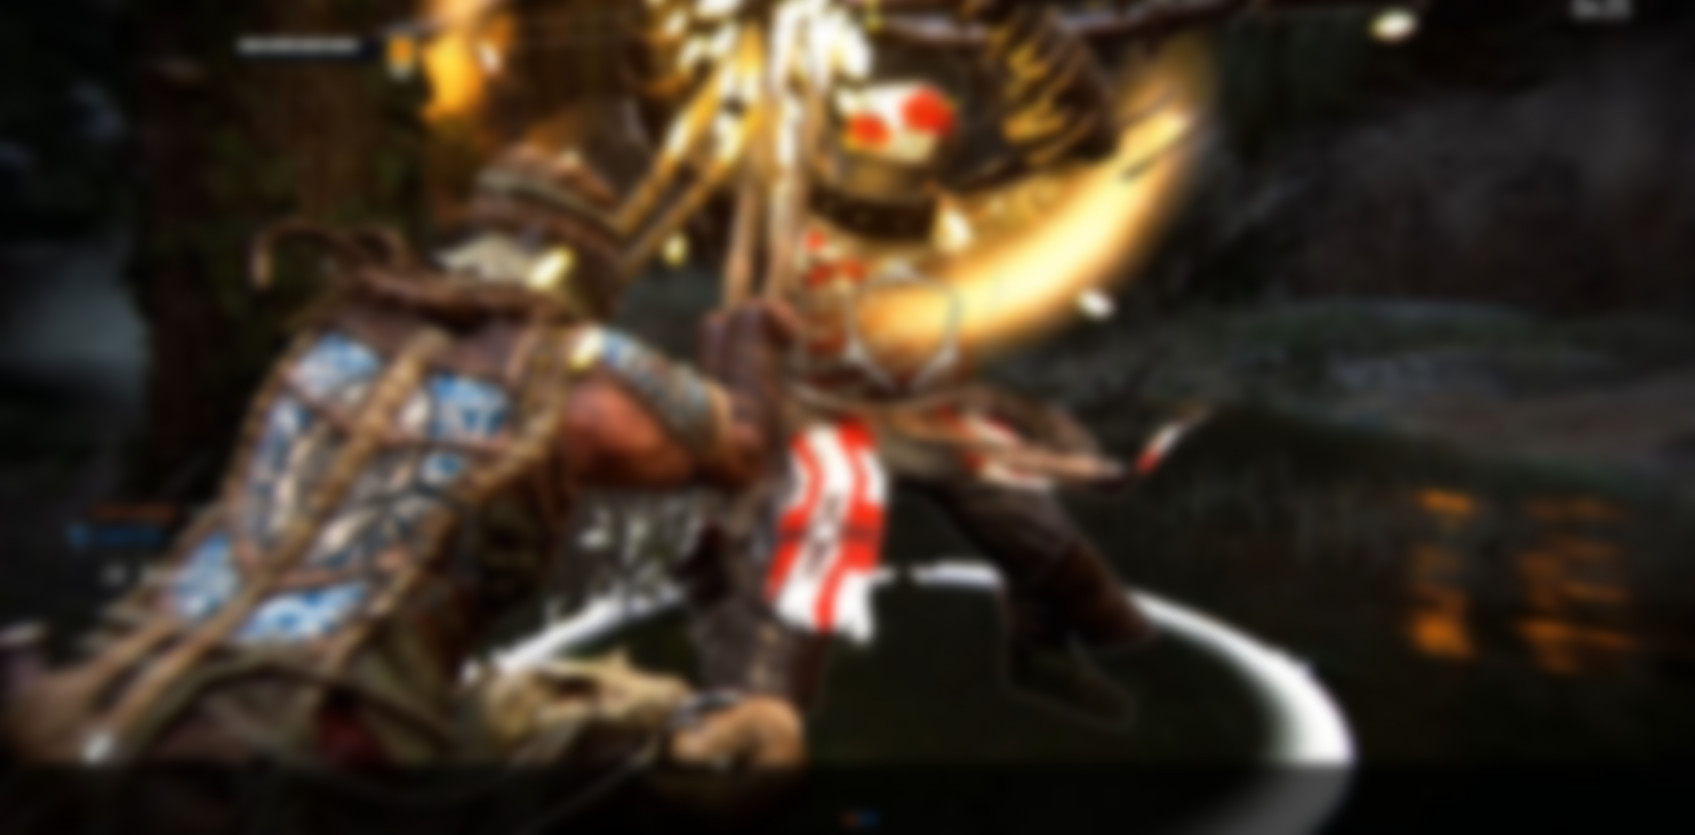 for honor matchmaking wont work